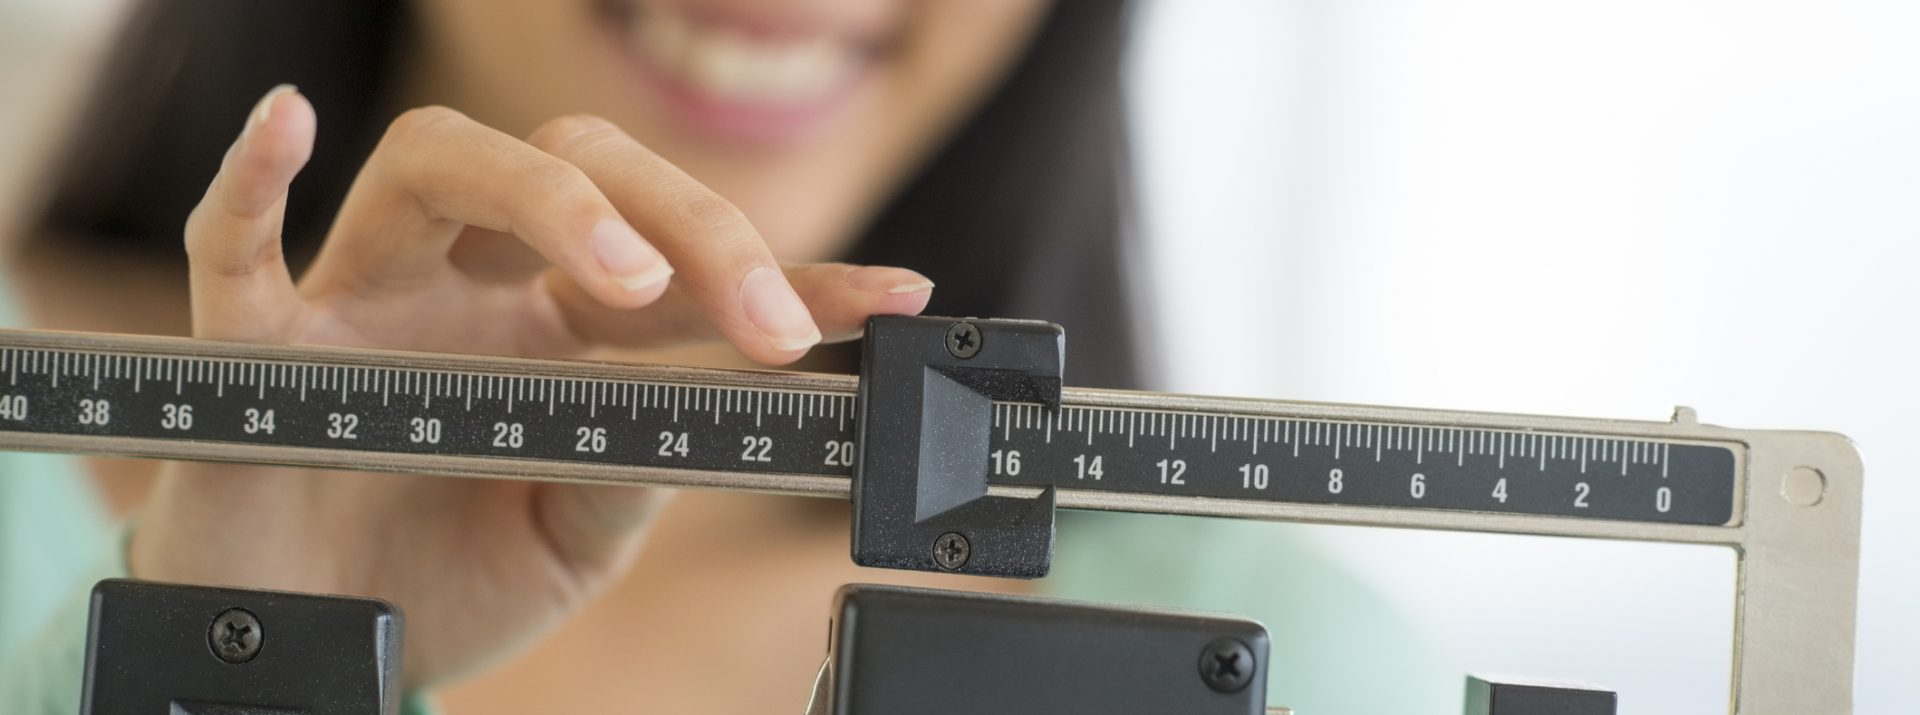 We are Proud to Offer a Goal-Focused Medical Weight Loss Program